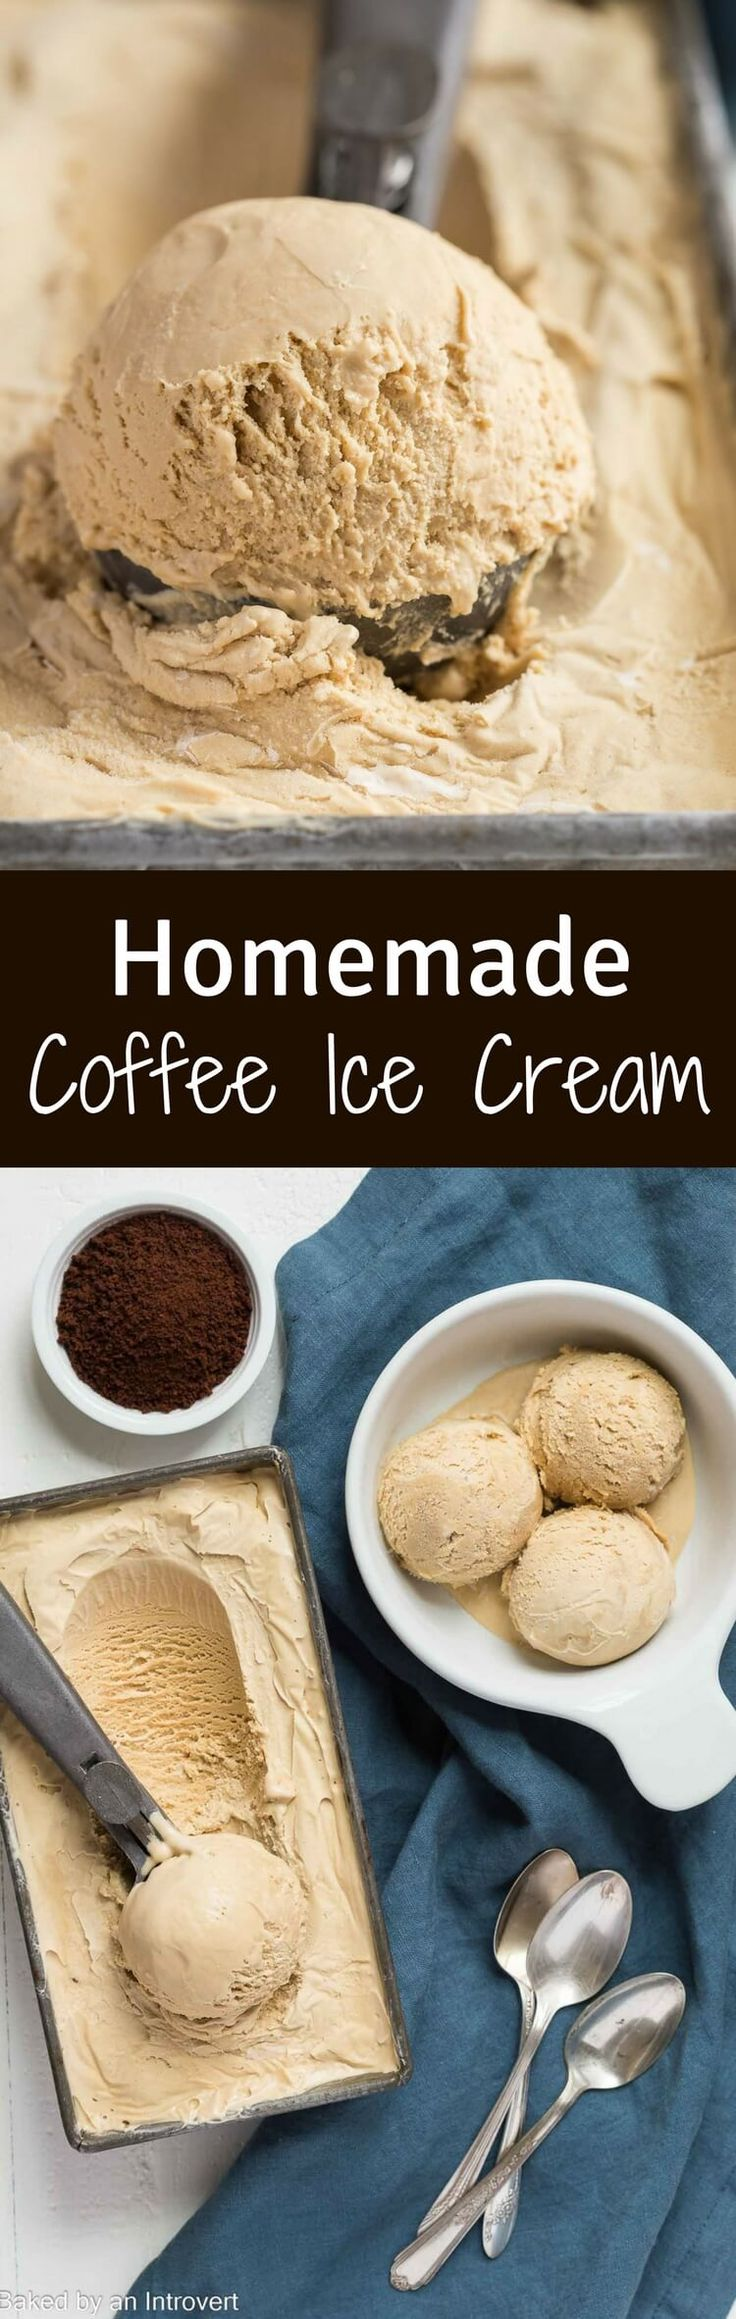 Homemade Coffee Ice Cream made just like old fashioned ice cream! This recipe will satisfy your sweet coffee cravings any time you have them! via @introvertbaker